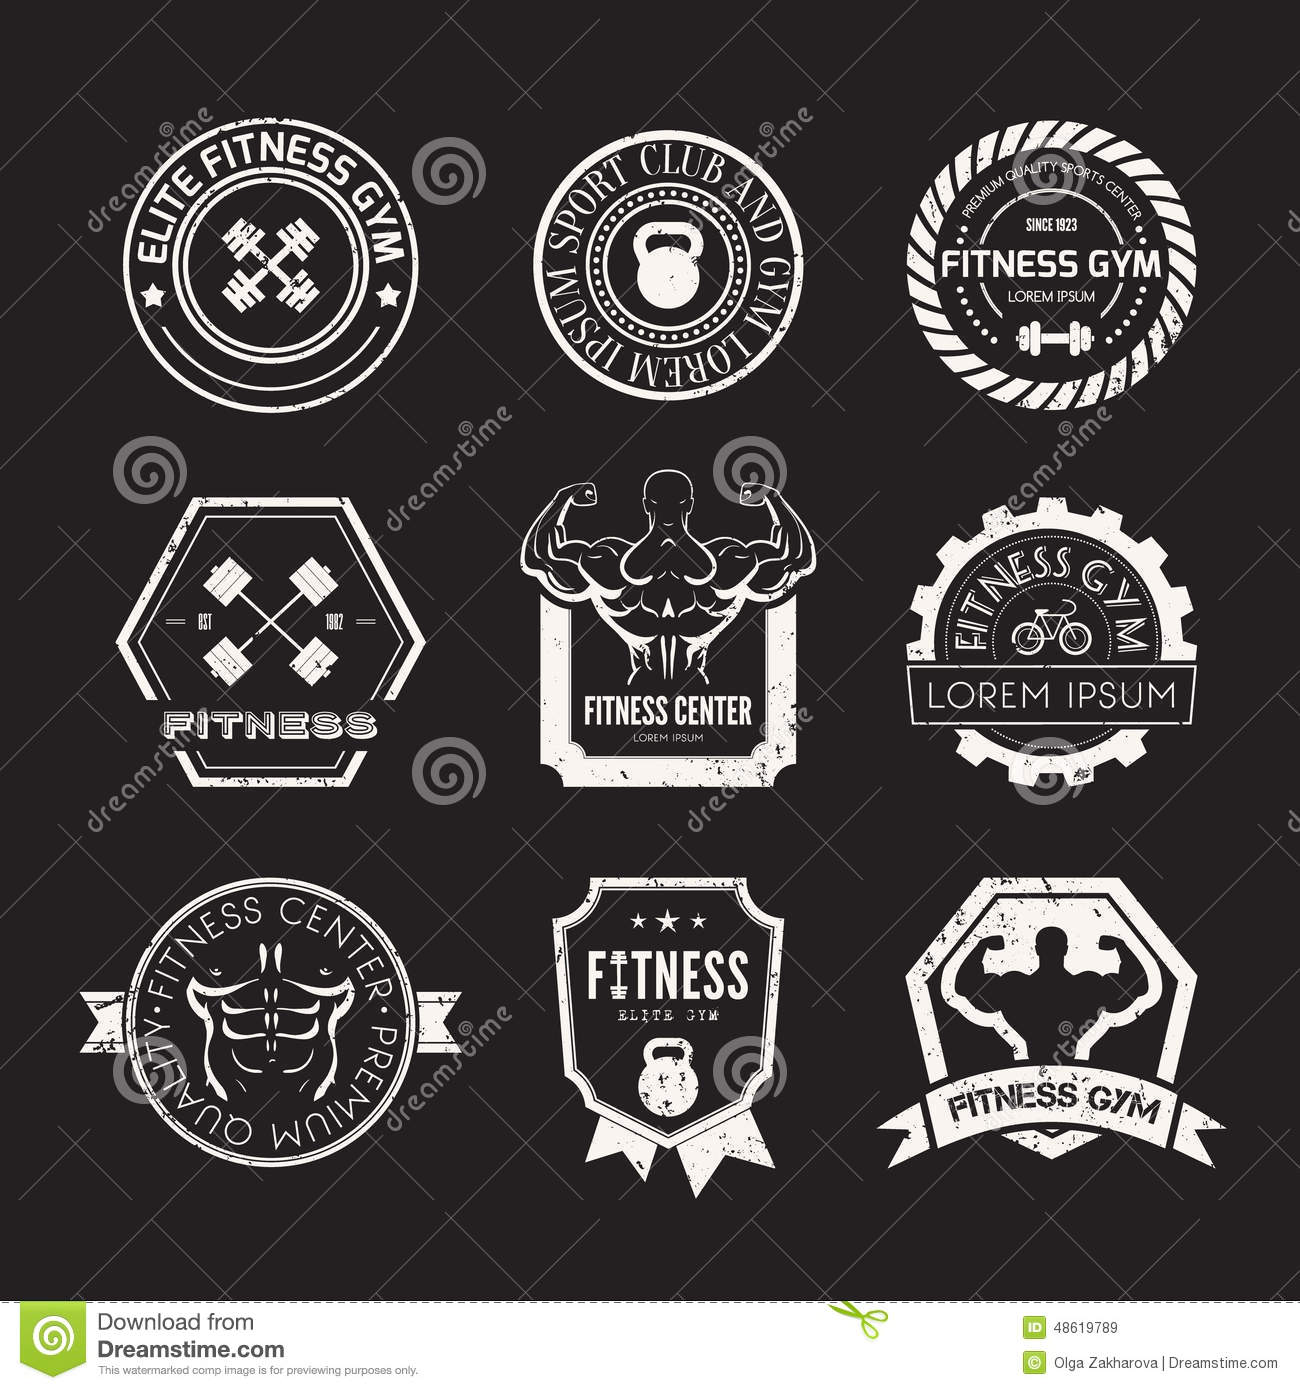 Fitness And Sport Gym Logos Stock Vector - Image: 48619789